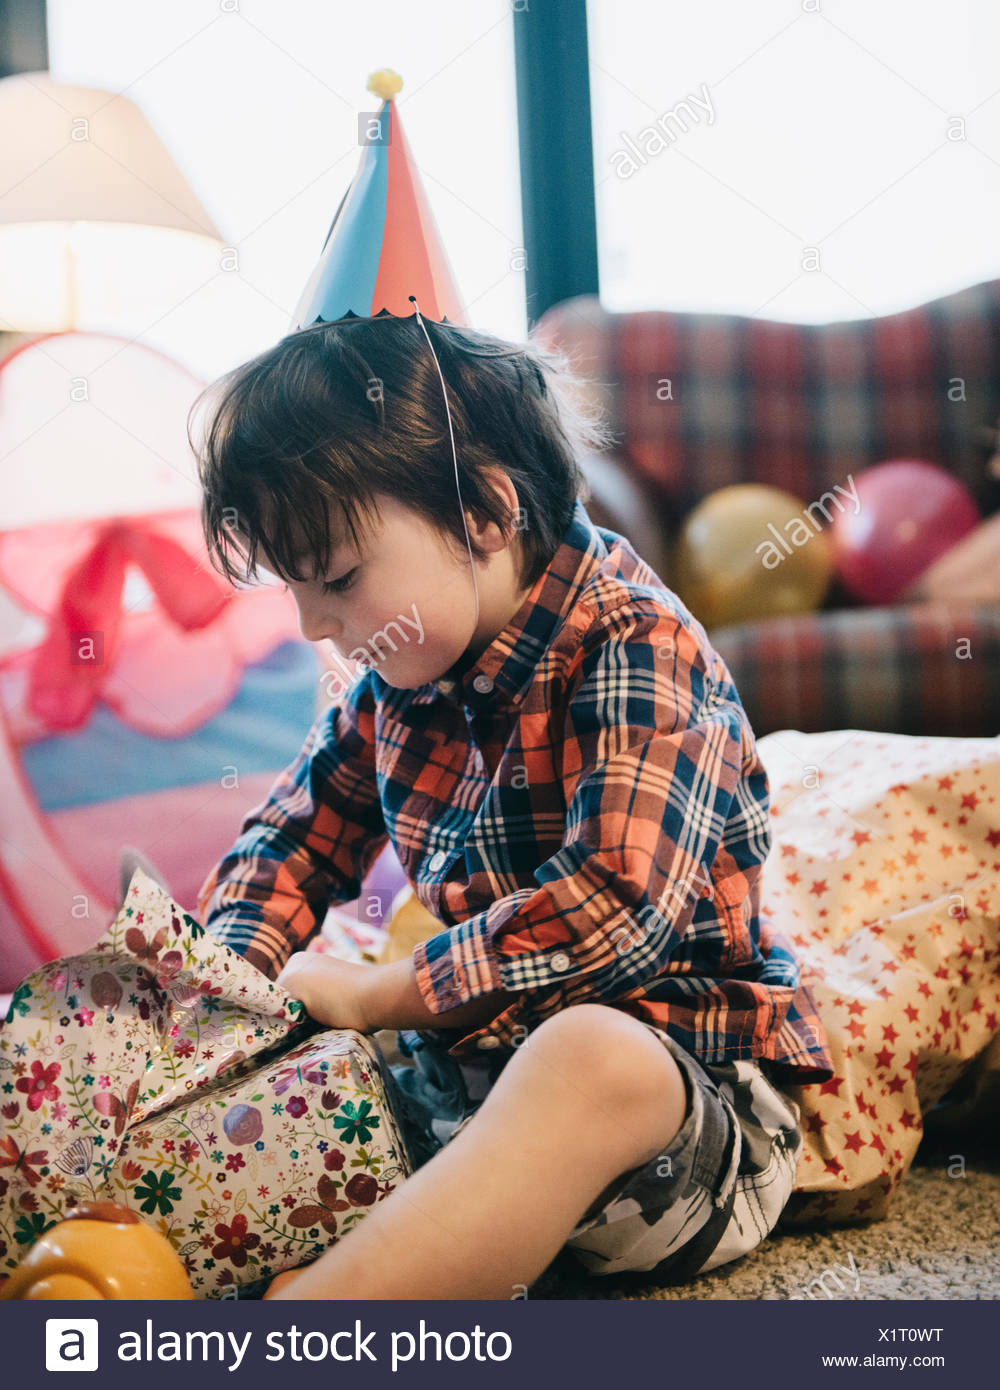 A boy unwrapping his presents at his birthday party. - Stock Image